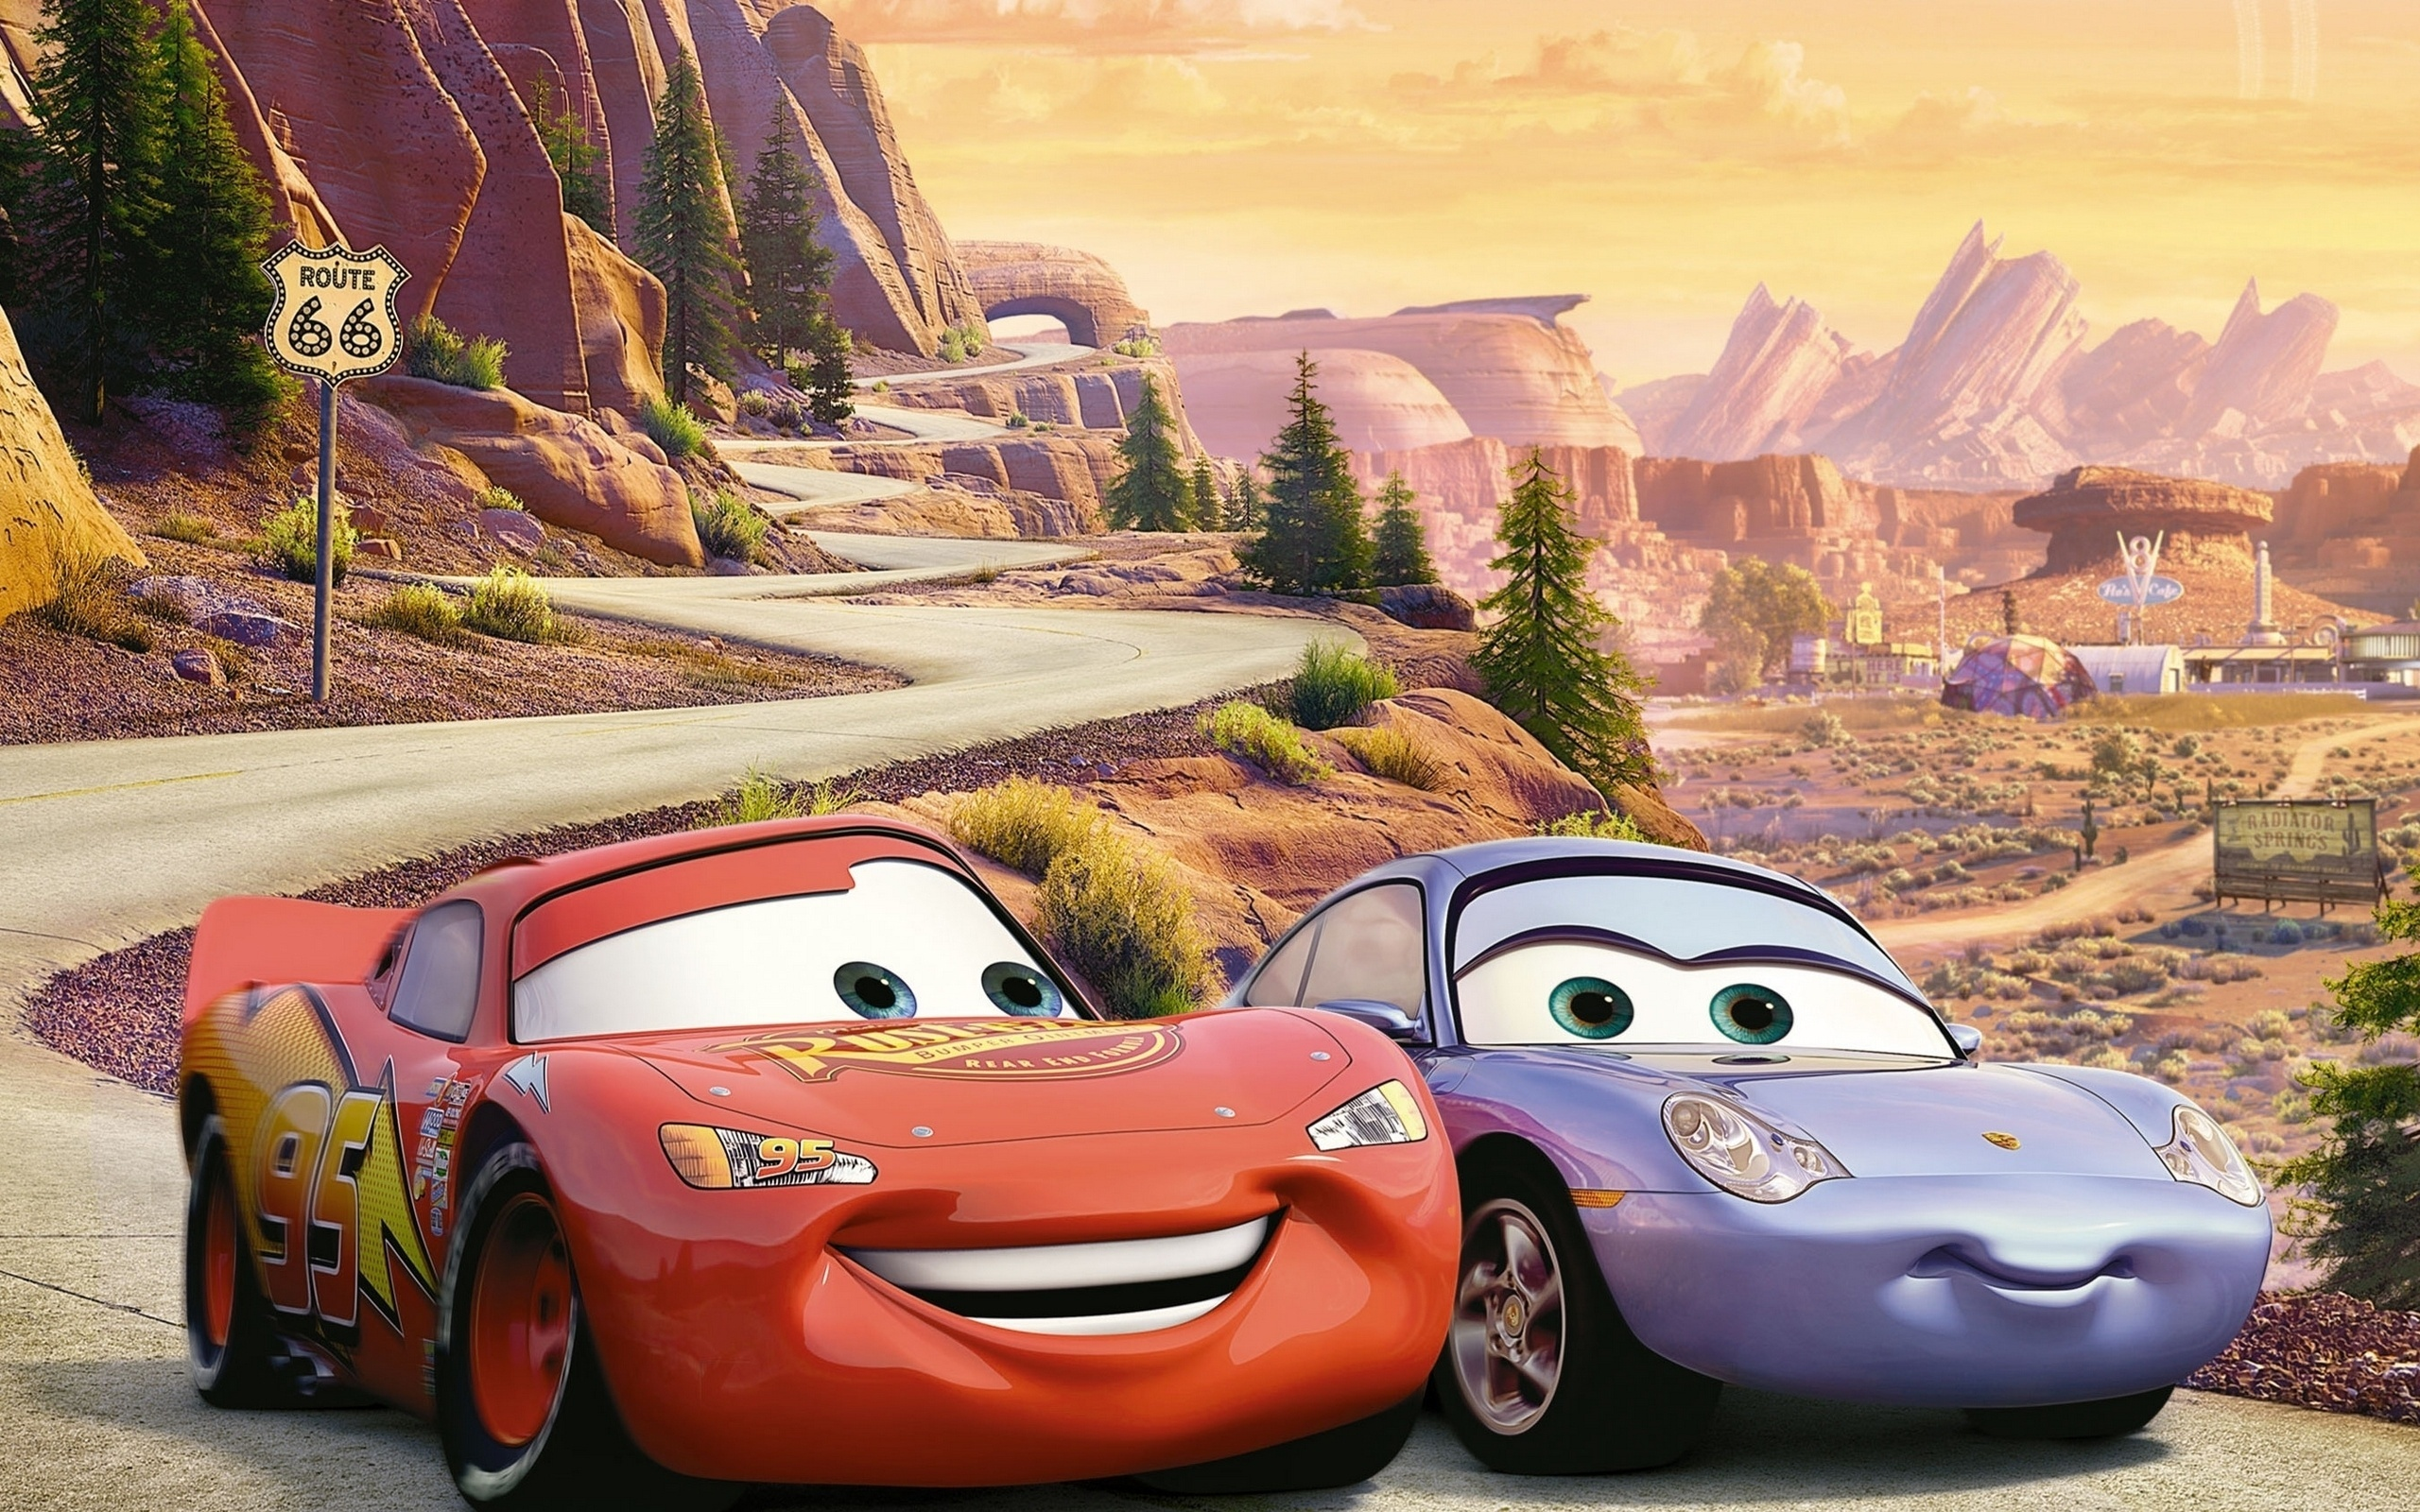 46 cars hd wallpapers background images wallpaper abyss - Image cars disney ...